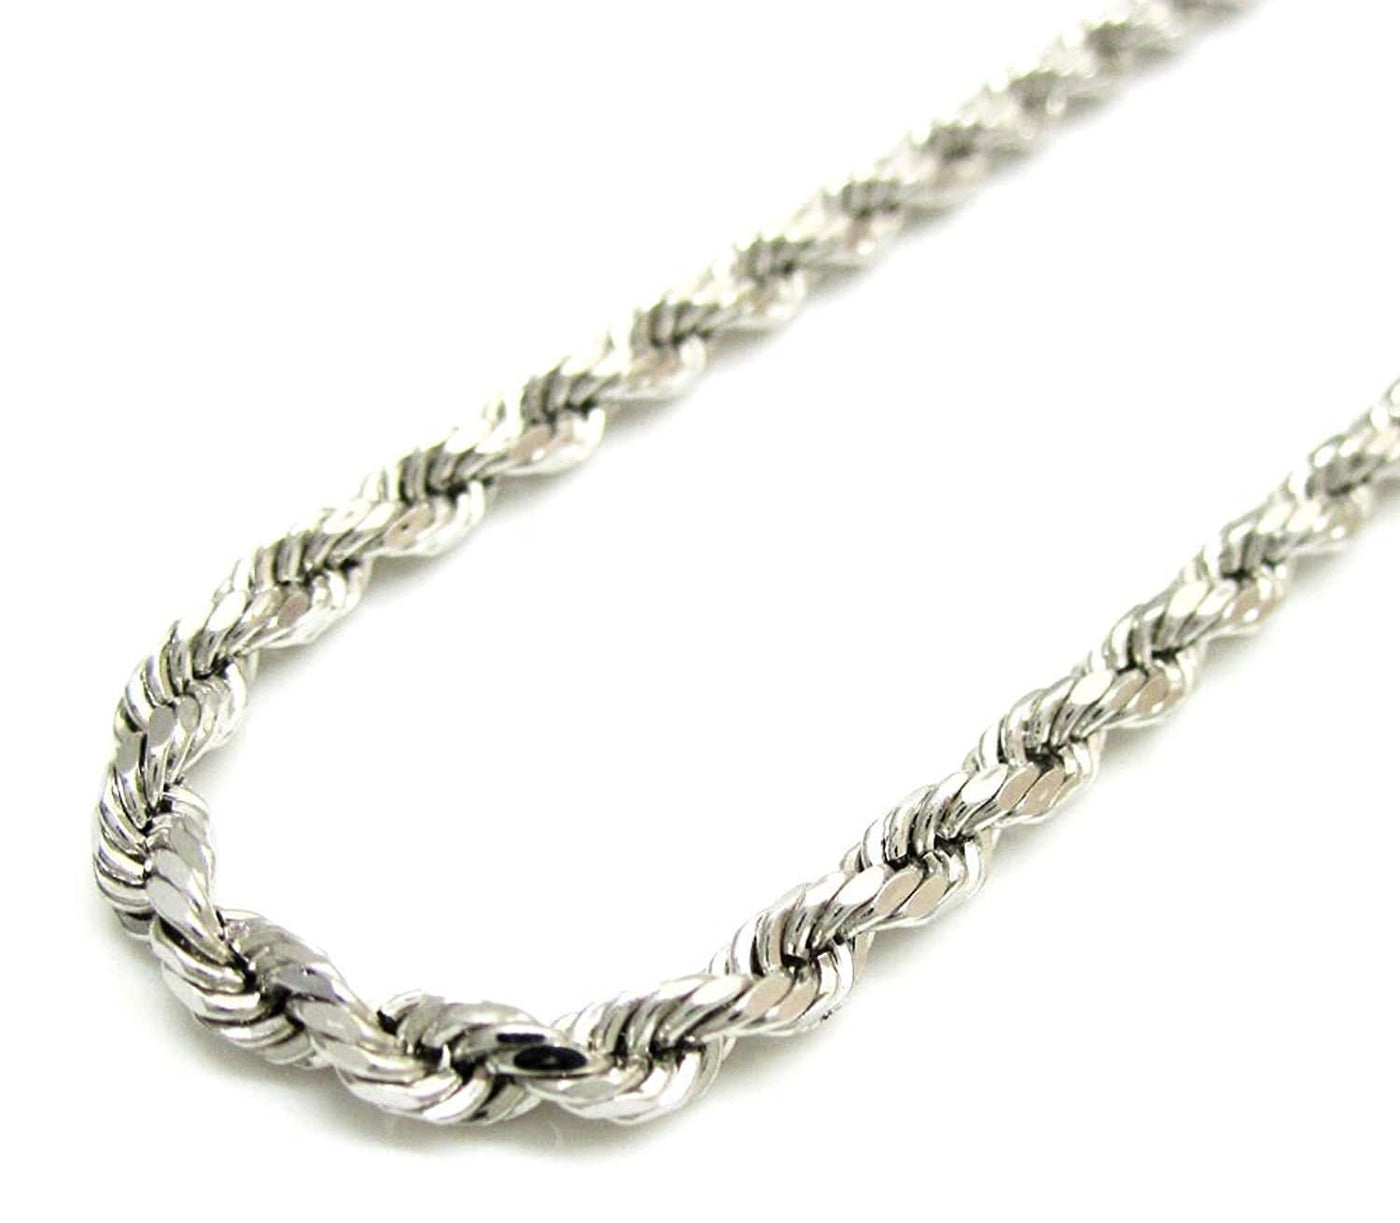 82e890965a6 ... 14K White Gold Men s 1MM Diamond Cut Ropes Chains   Bracelet